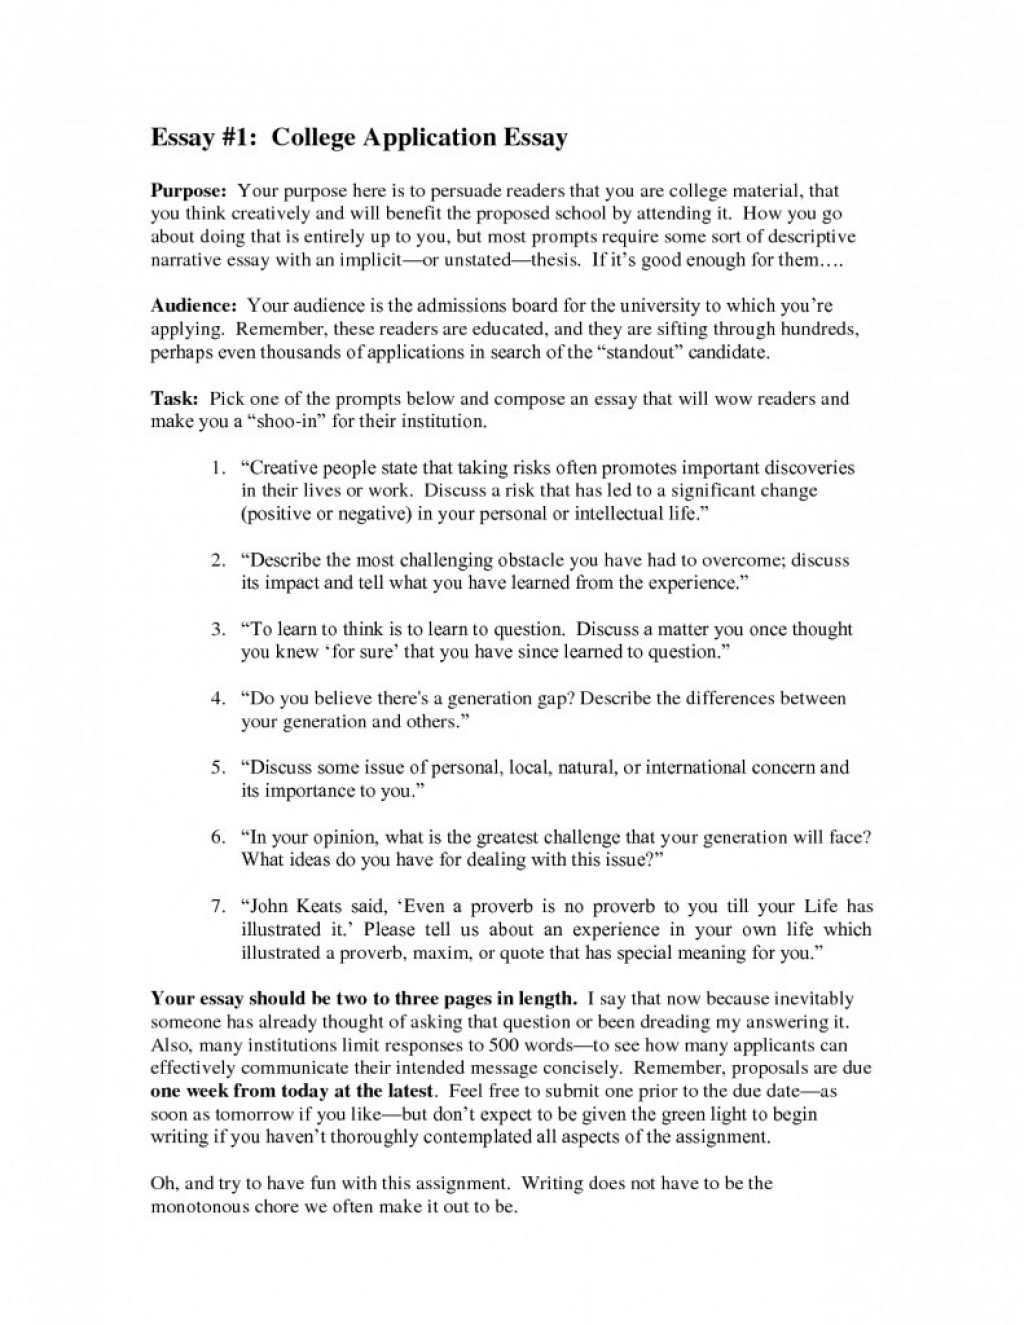 018 Essay Example College Application 791x1024 Sample Uc Imposing Essays Prompt 1 6 3 Large